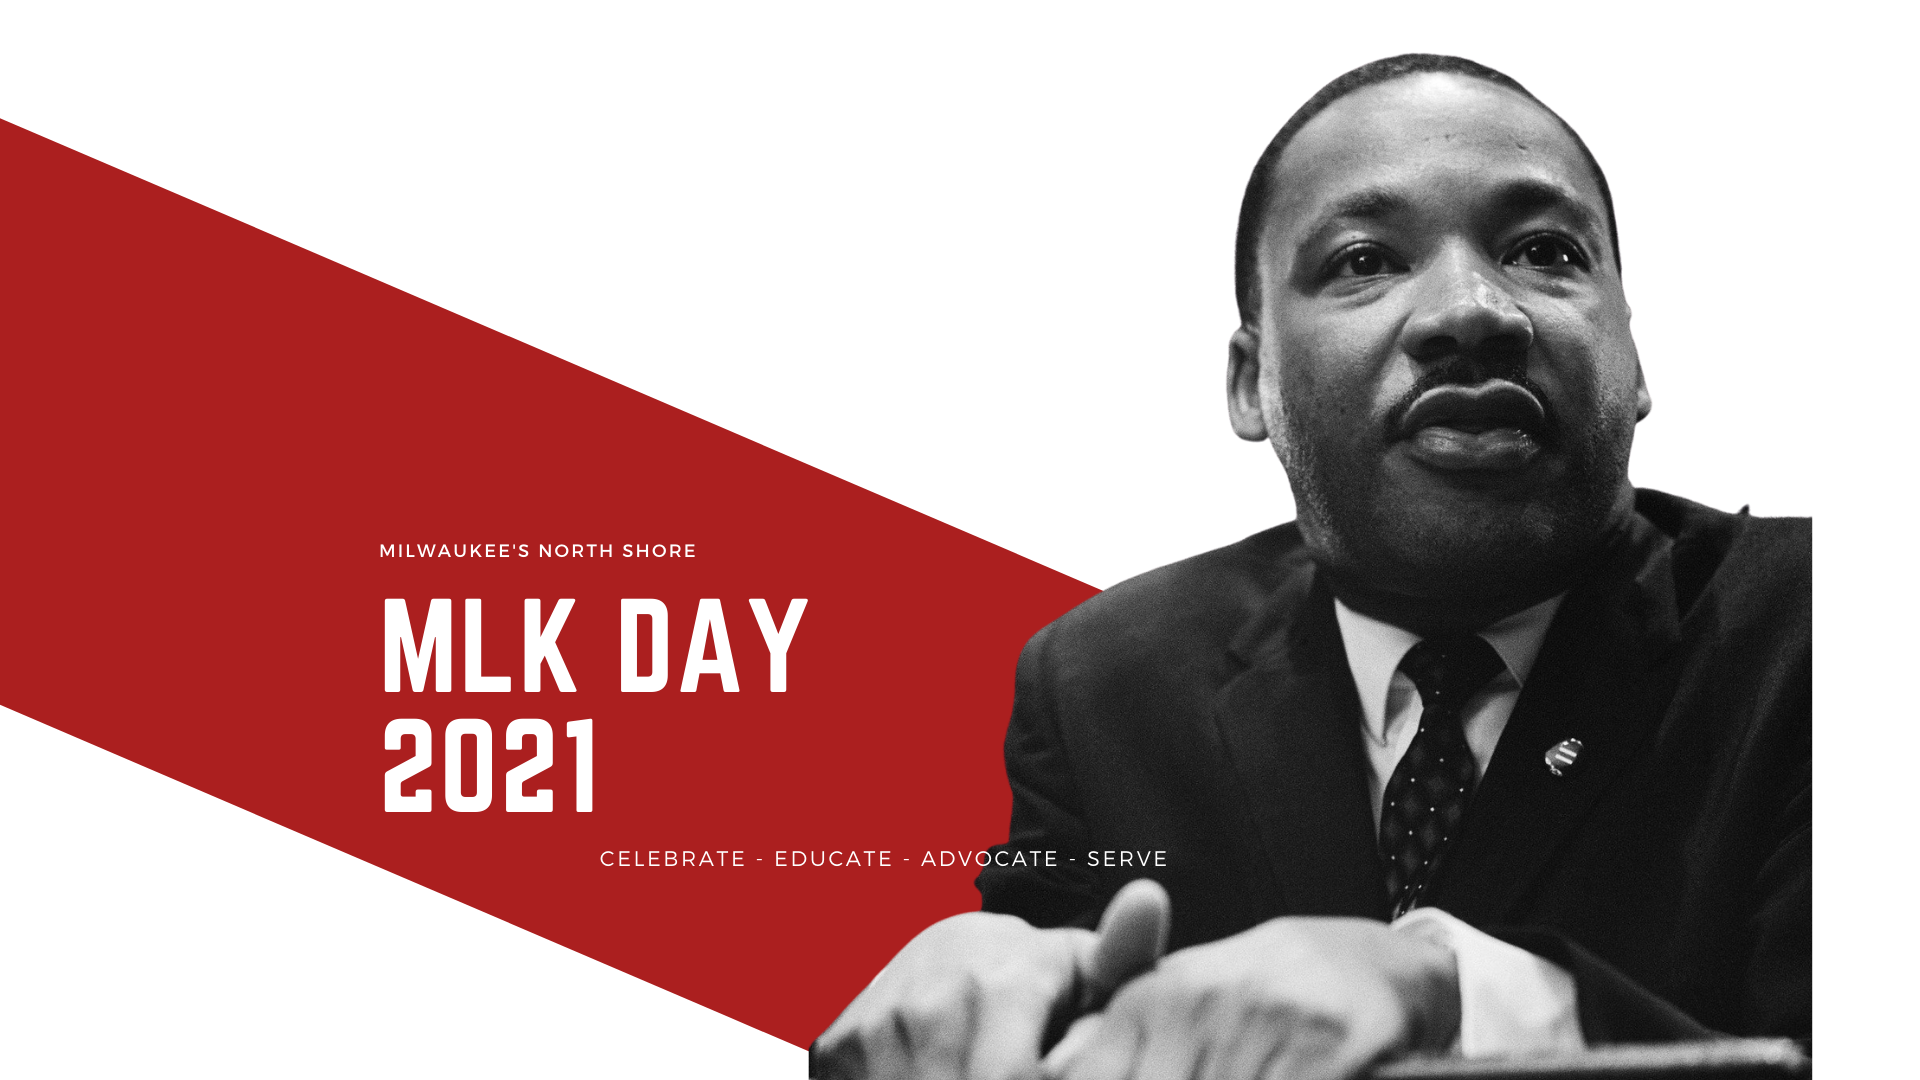 Copy of MLK DAY 2021 Logo Size